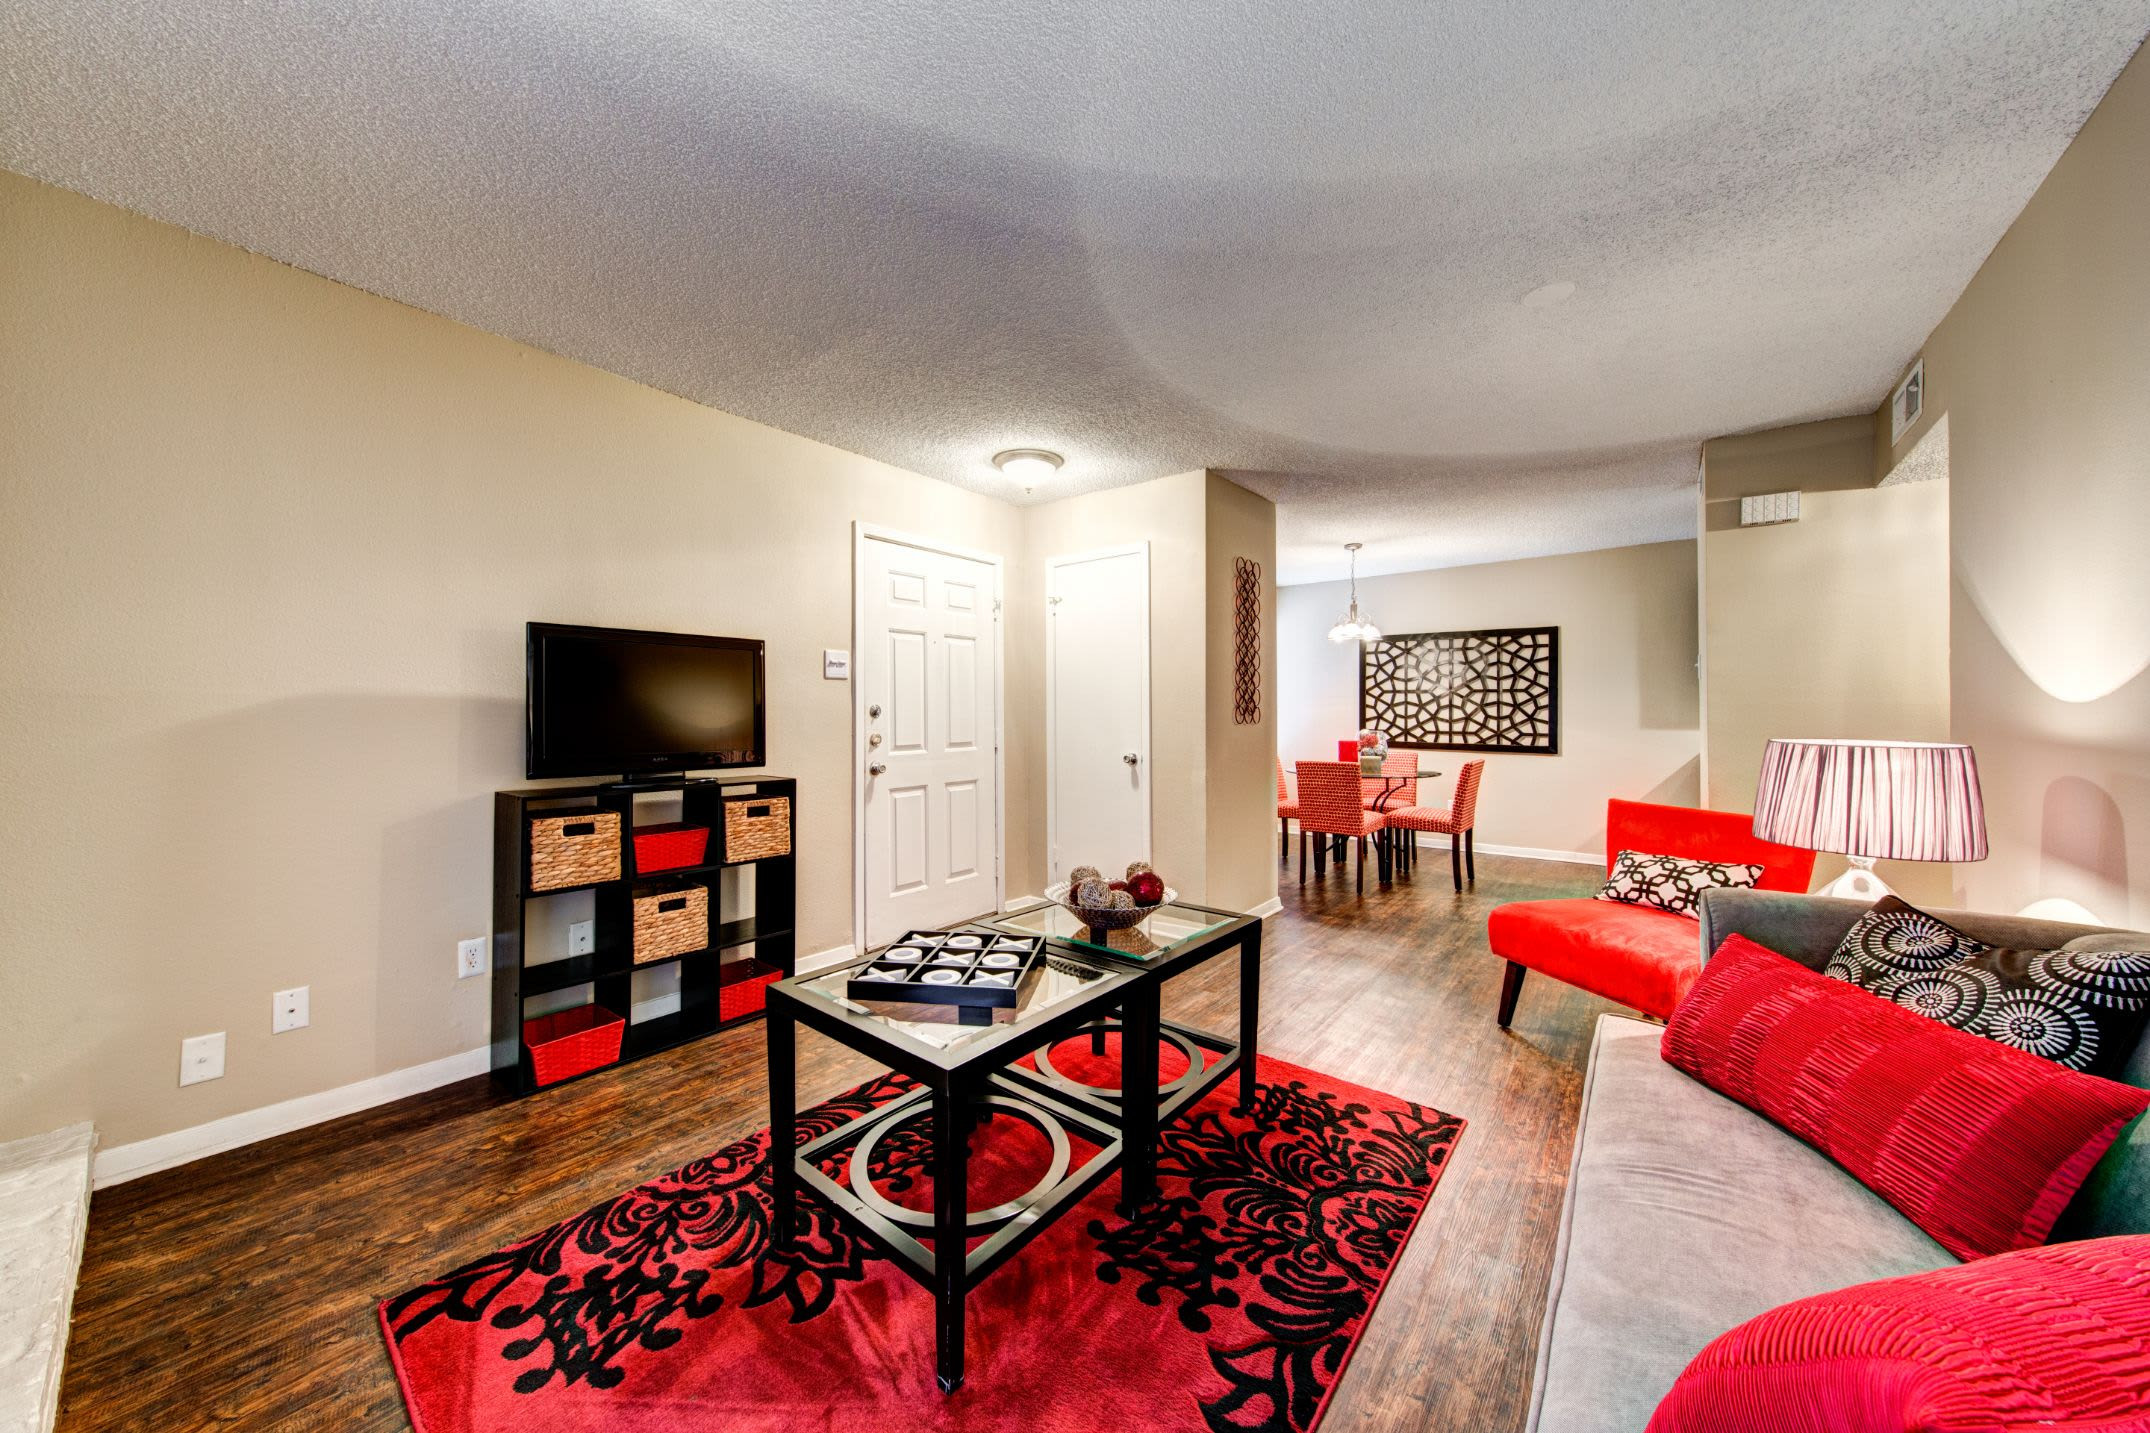 Living room with red accents at The Park at Flower Mound in Flower Mound, Texas